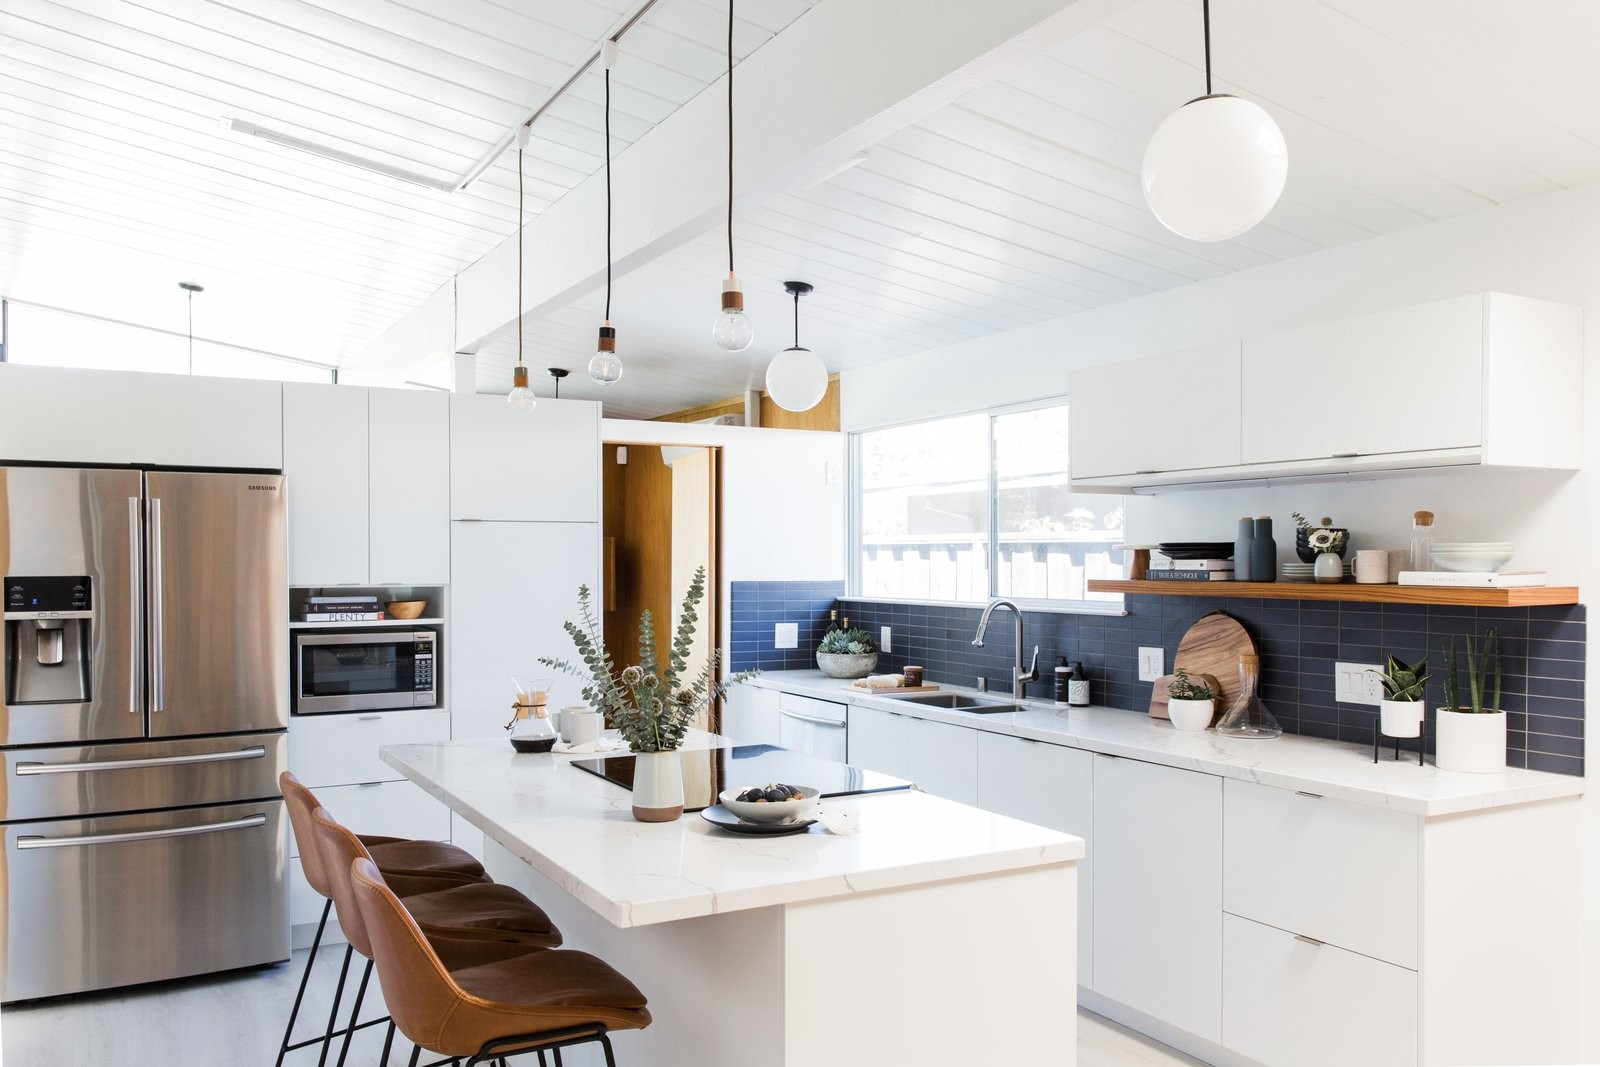 the-once-dim-cramped-kitchen-in-this-1963-eichler-in-san-jose-california-now-features-luxe-vinyl-tiling-white-slab-fronts-fr...